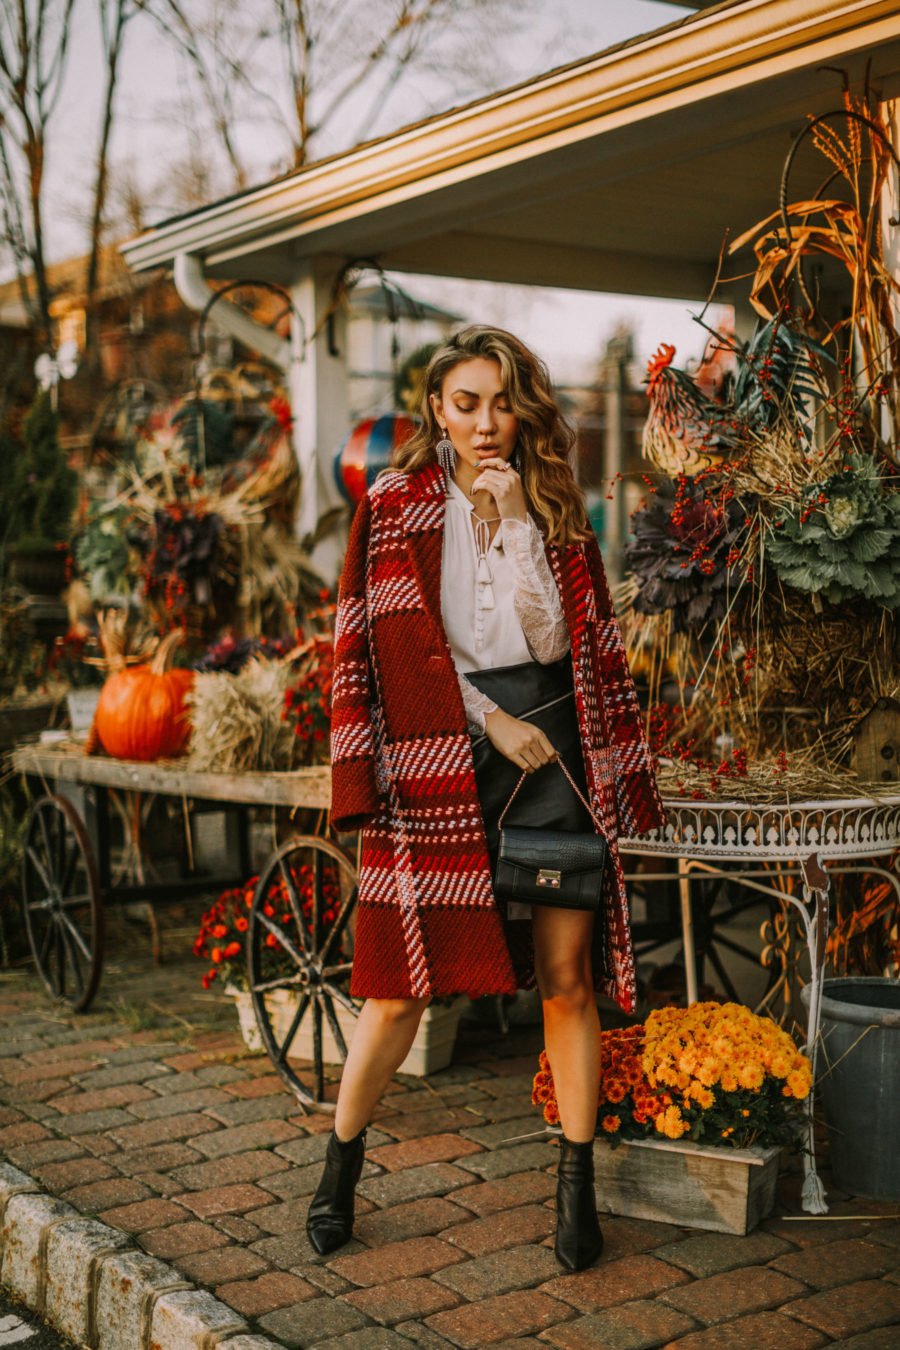 fashion blogger jessica wang shares chic christmas outfits for every day of the week in a plaid express coat and leather mini skirt // Notjessfashion.com